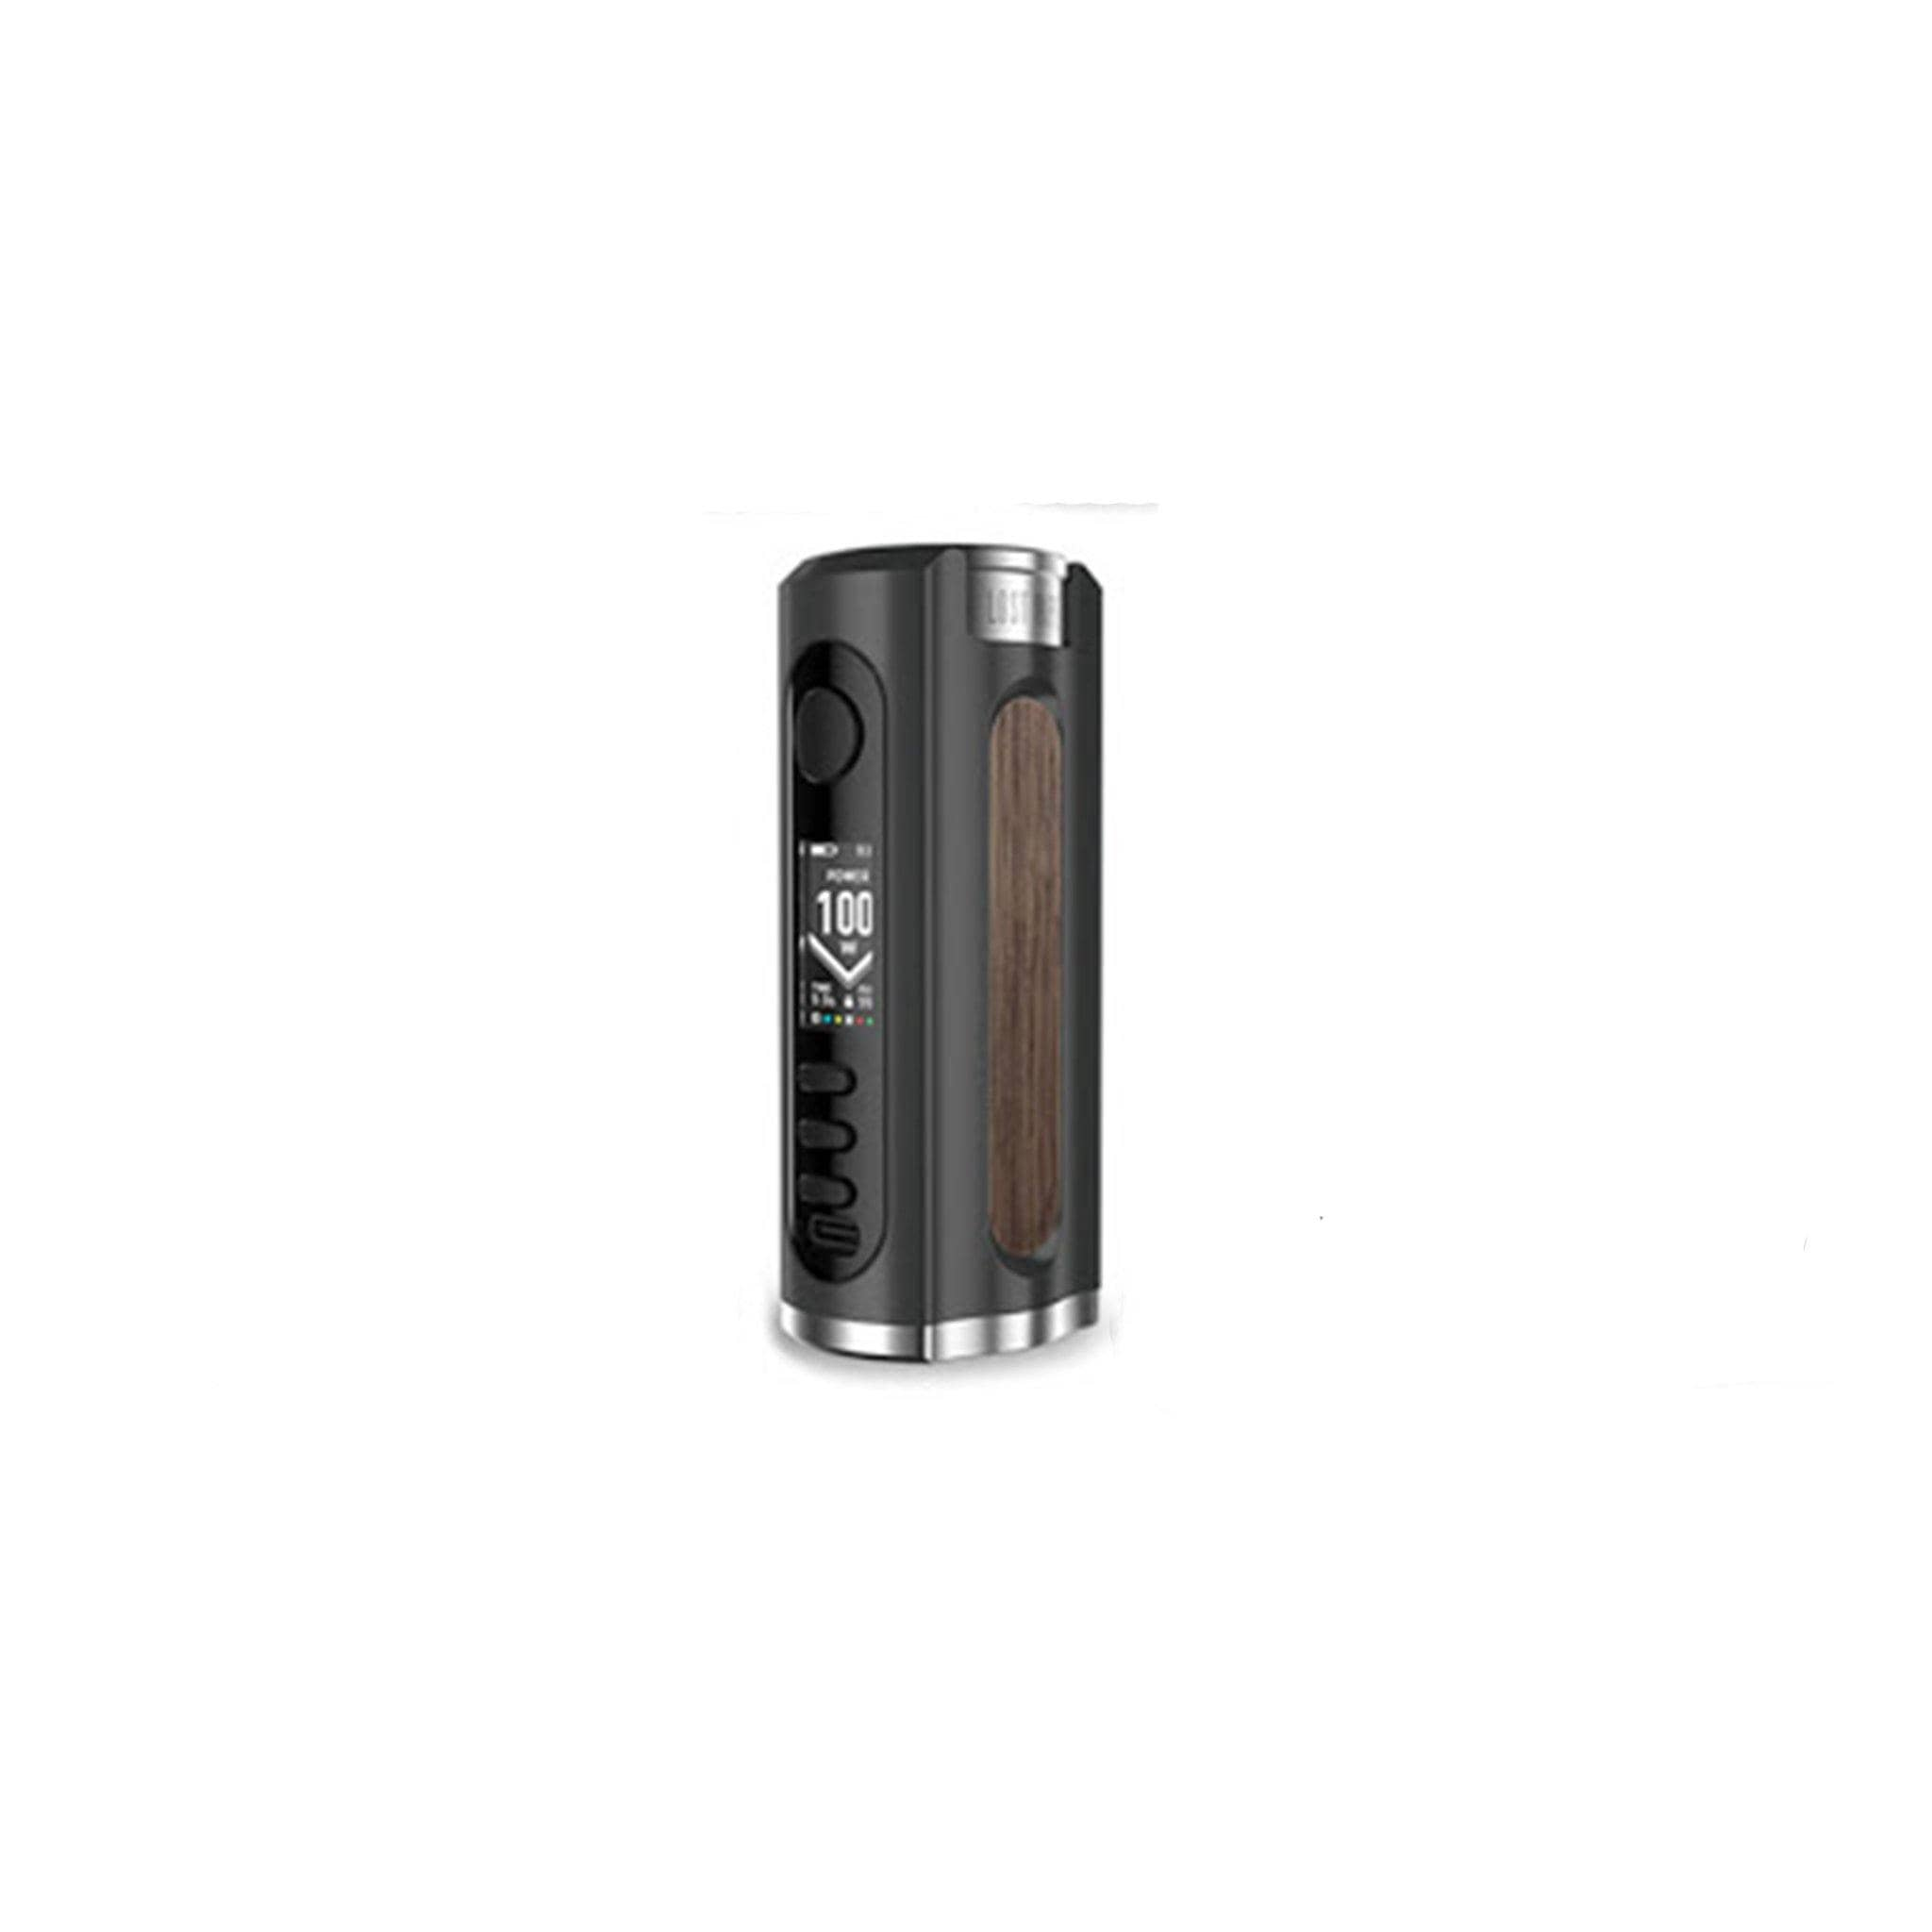 LOST VAPE GRUS 100W BOX MOD - Boss Vapes